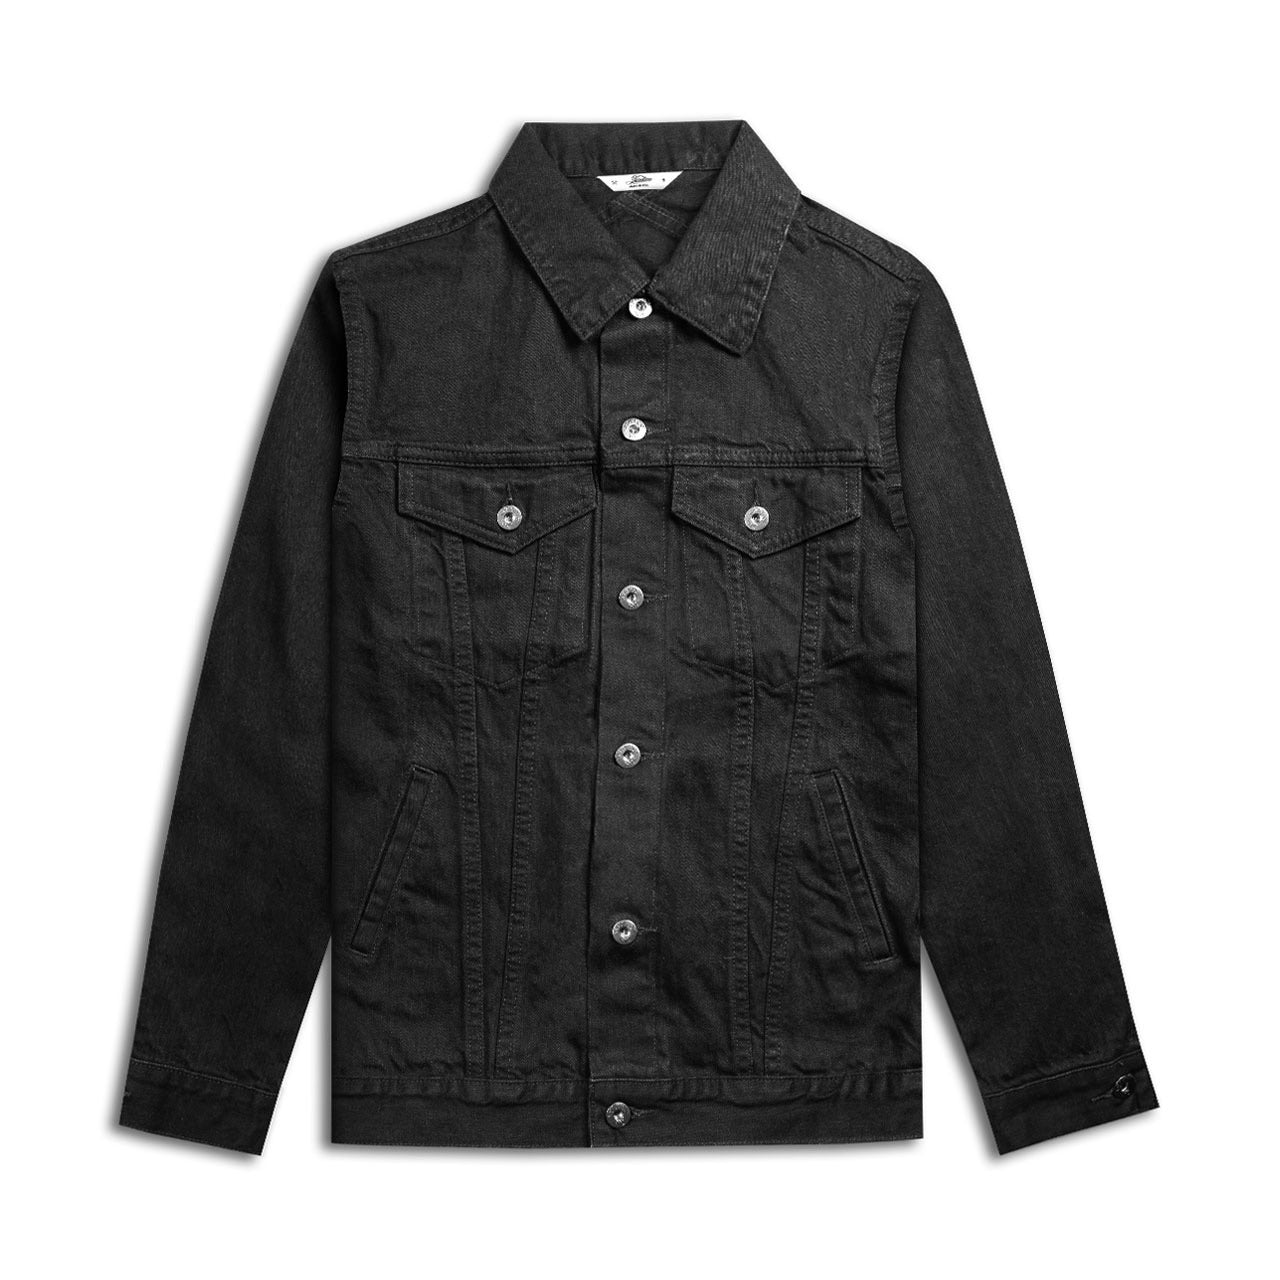 3Sixteen Type-3 Lightweight Denim Jacket